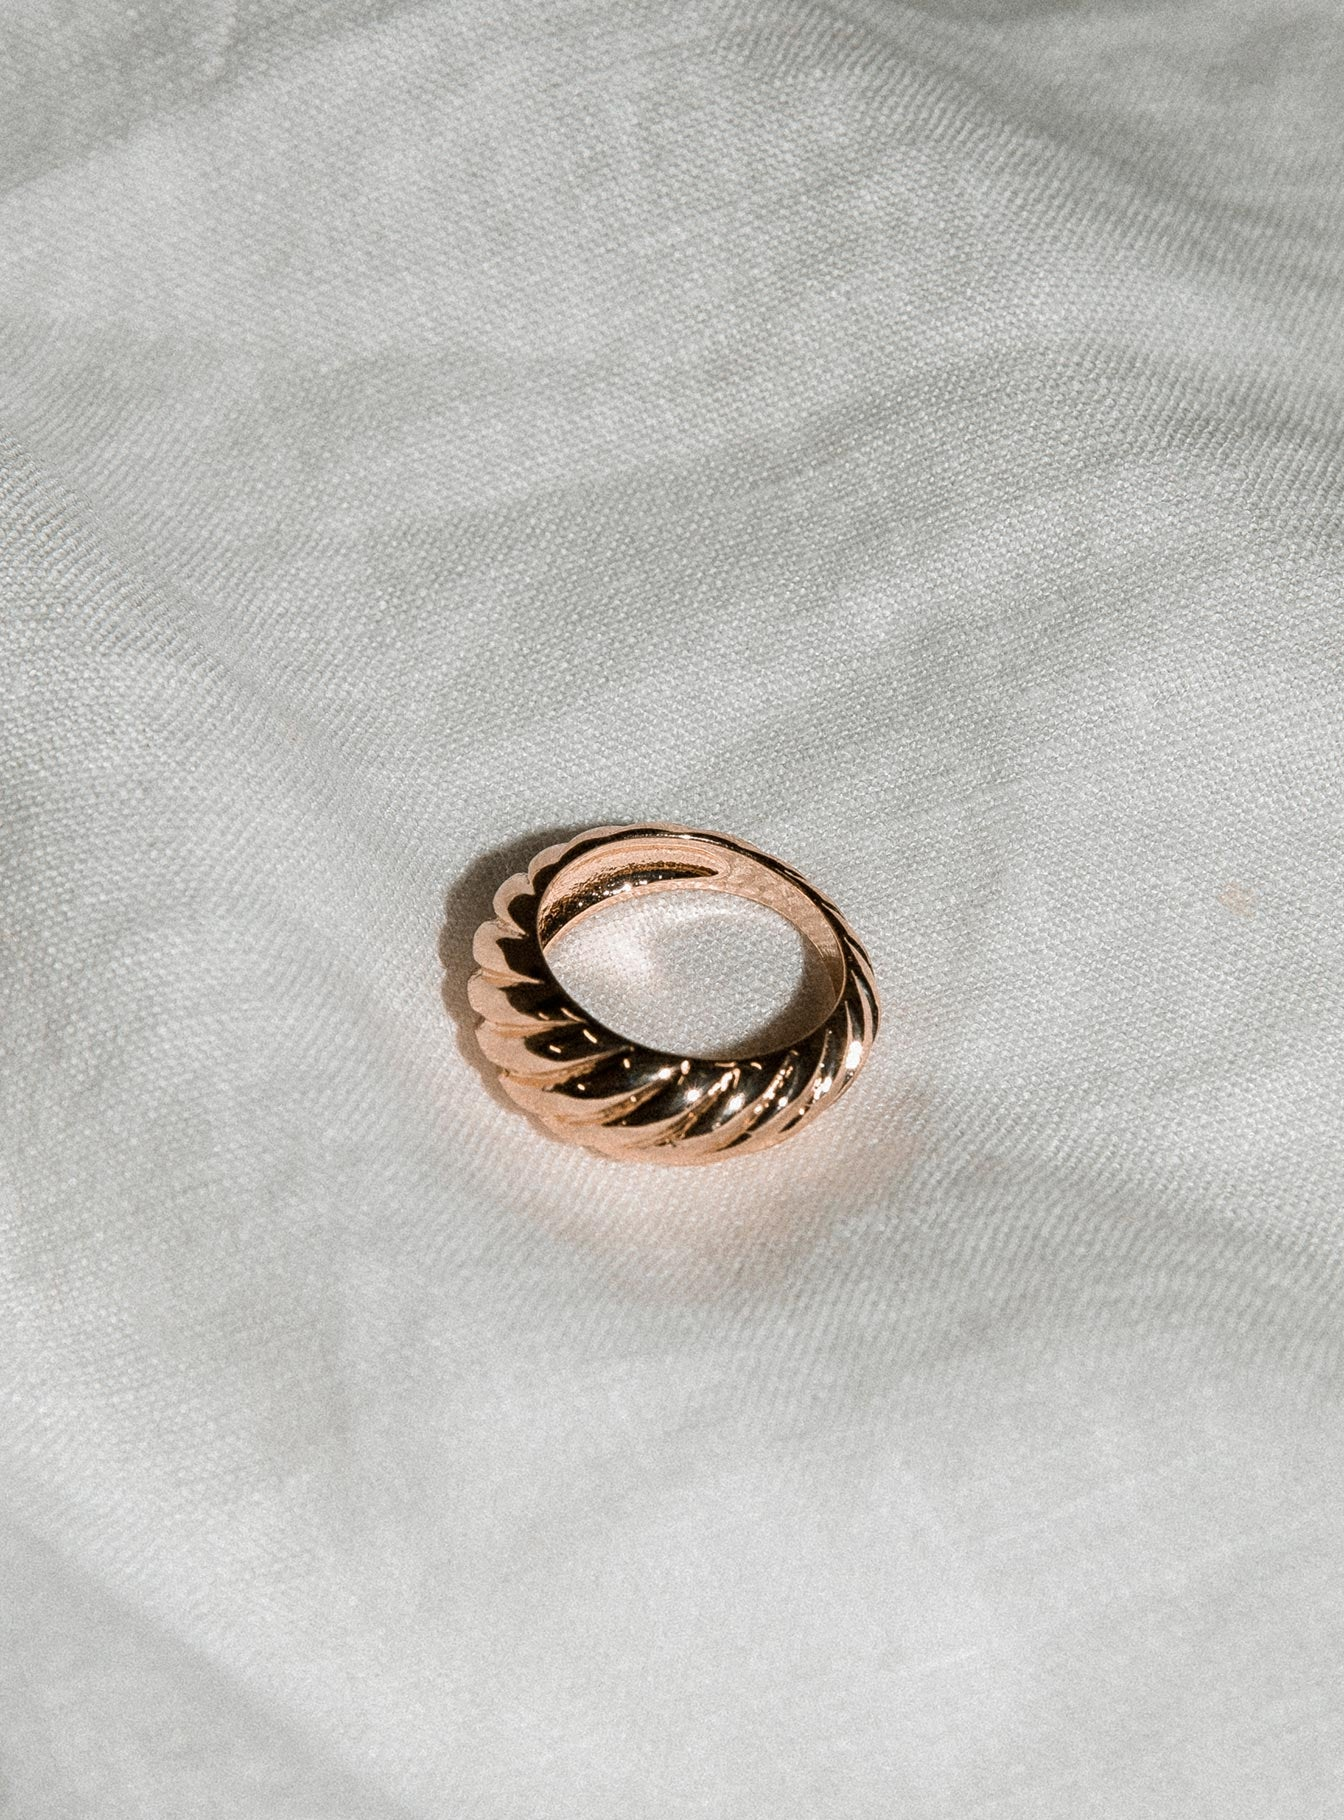 The Viv Ring